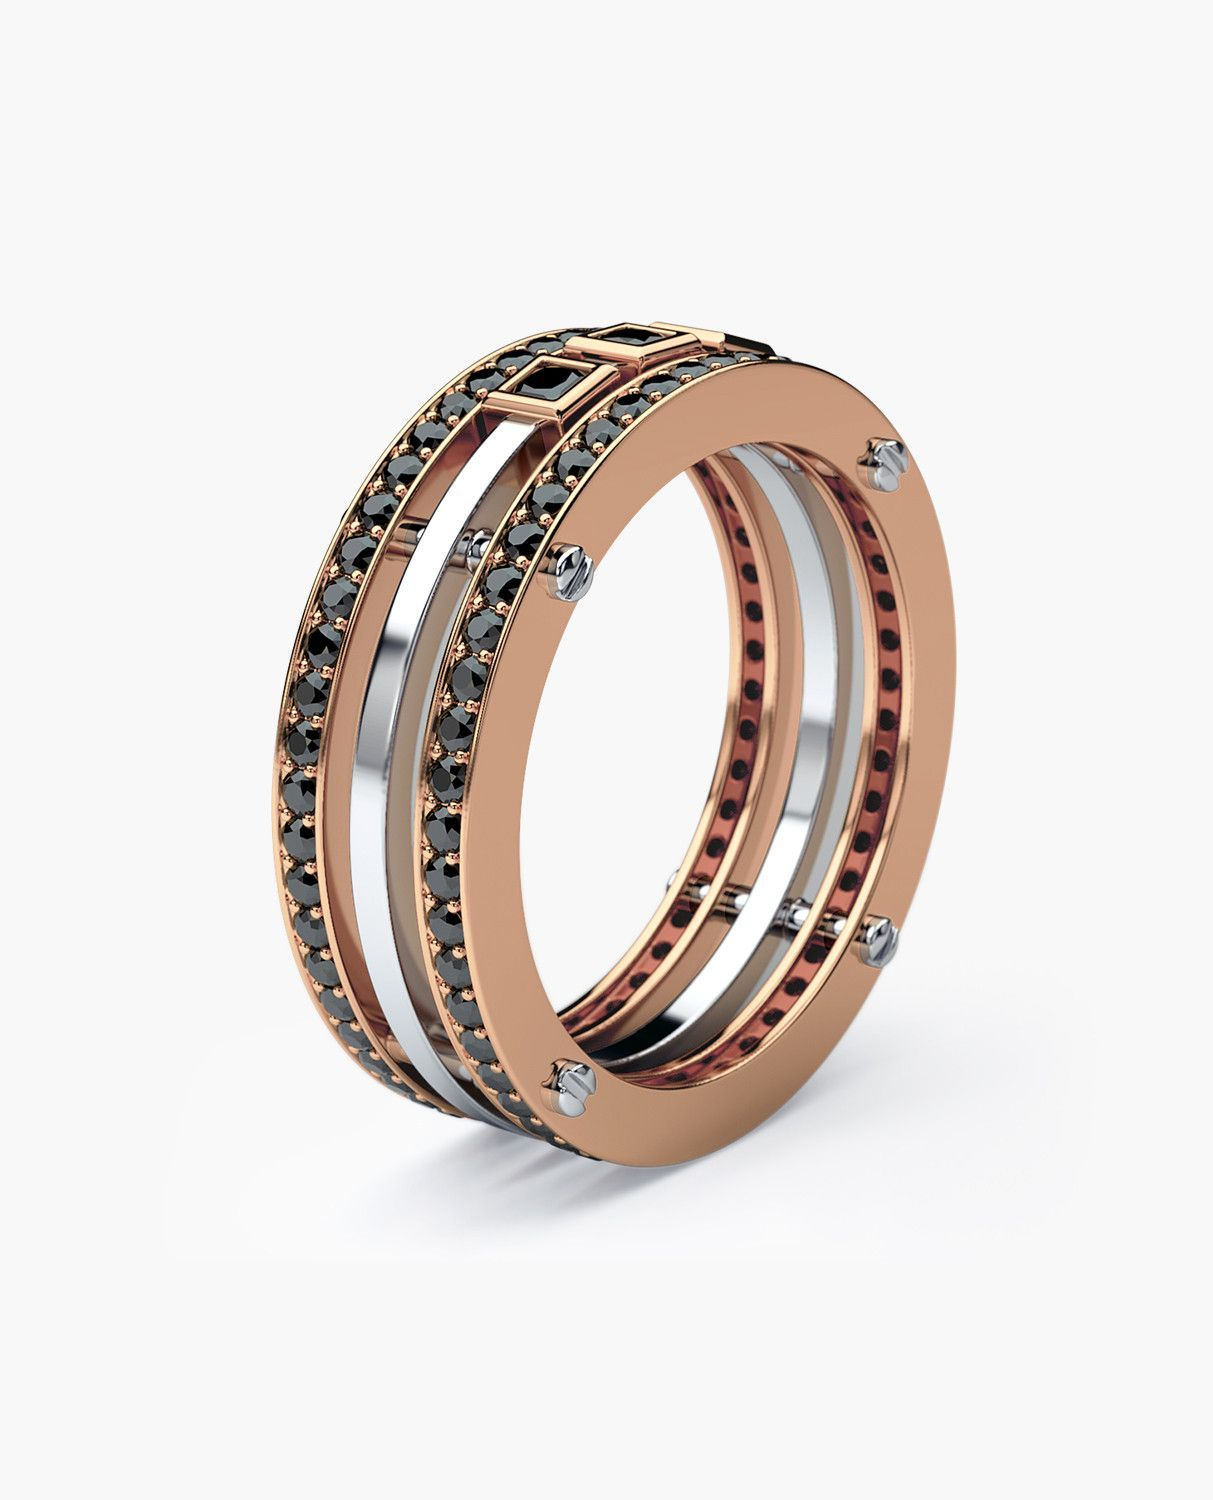 Three Bold, Stylish Bands Connected By Our Signature